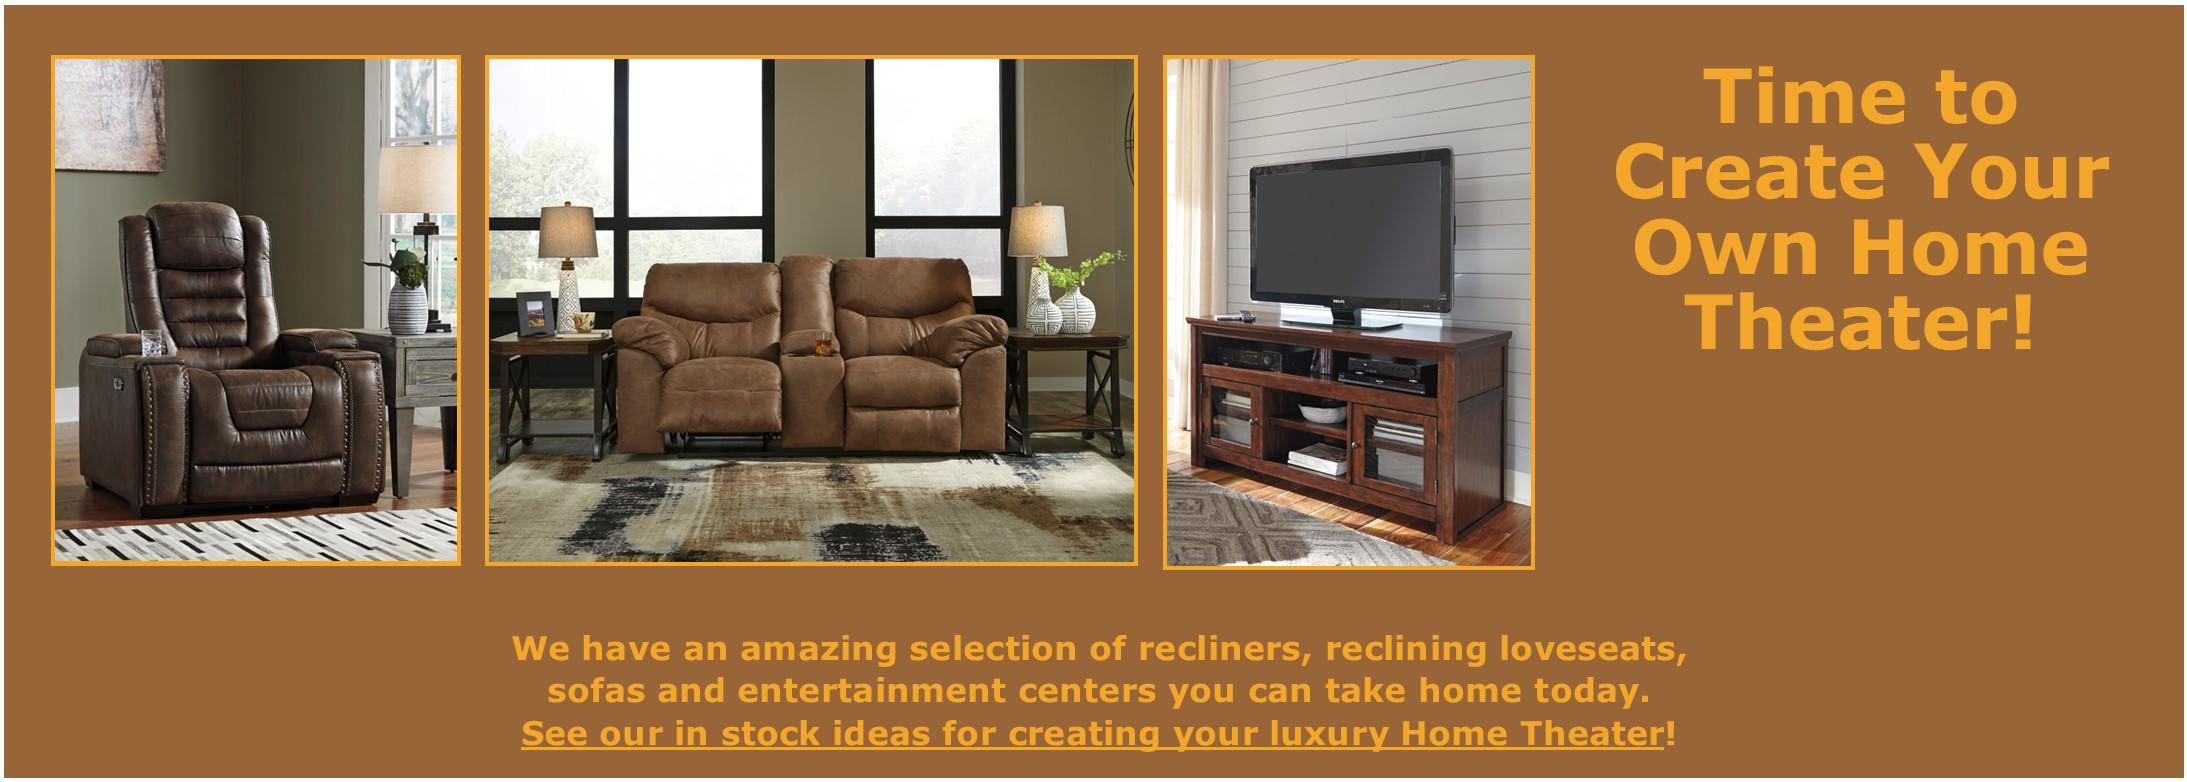 CREATE YOUR OWN HOME THEATER